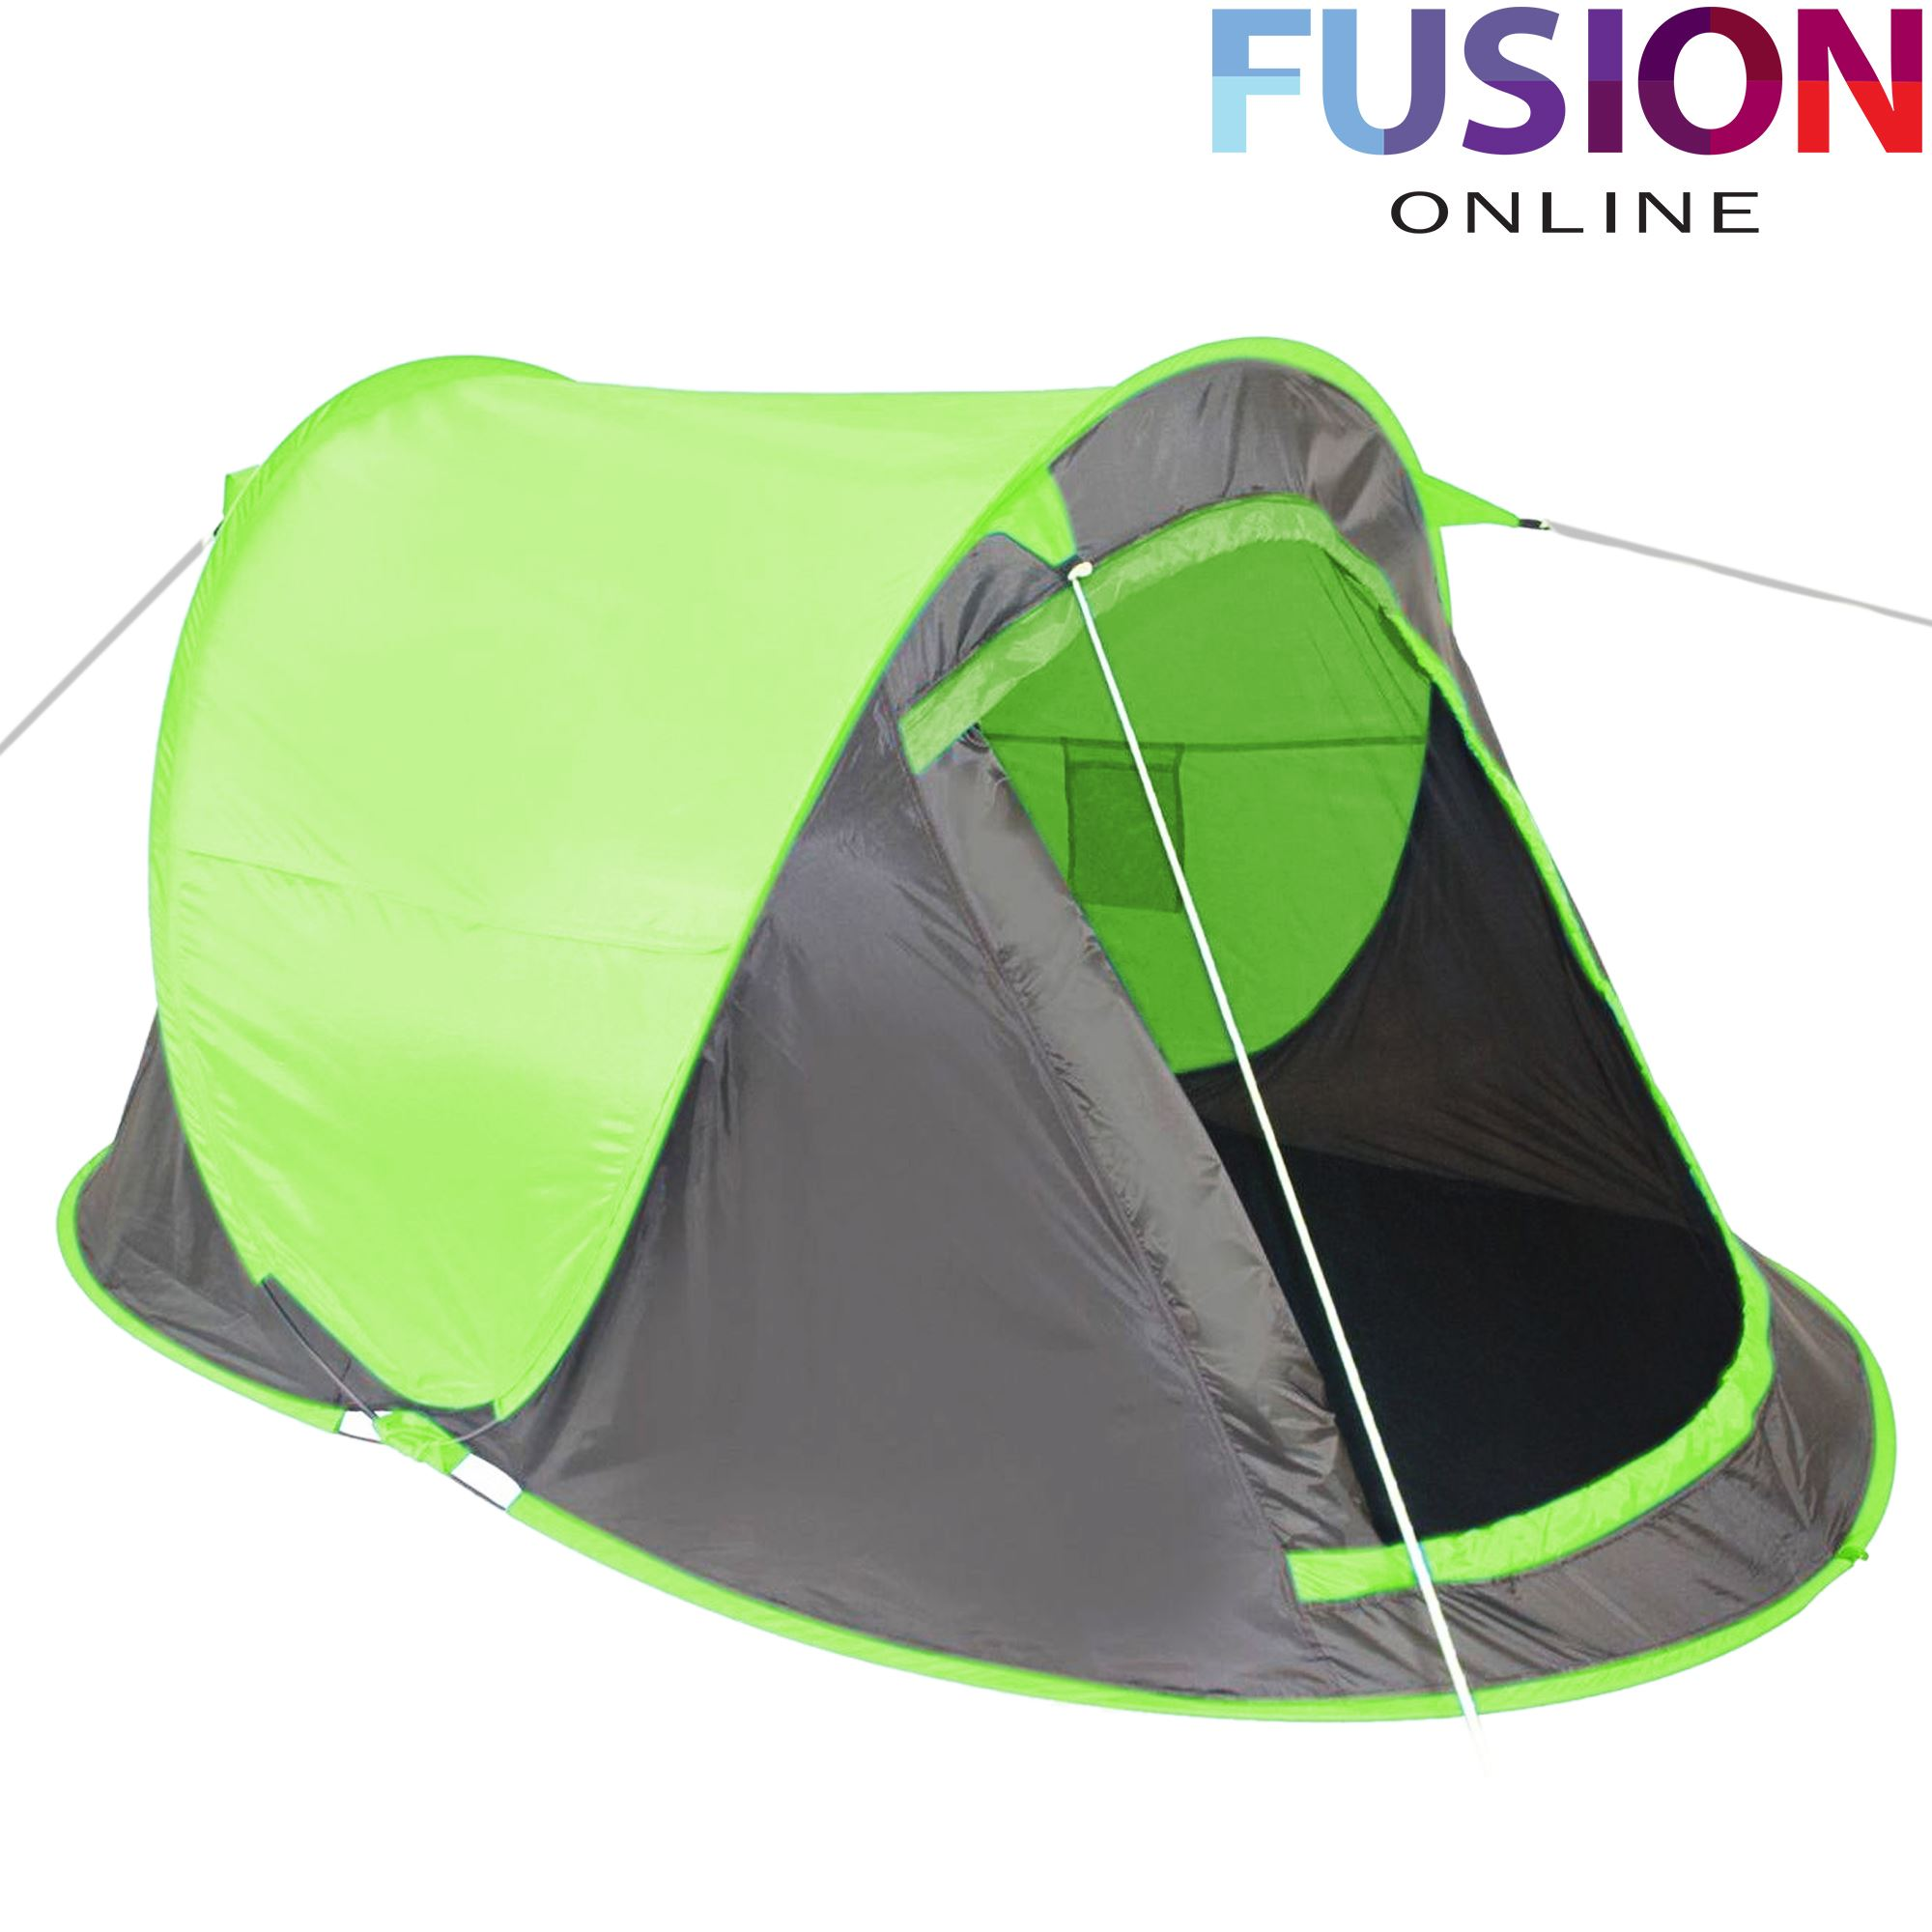 pop up tent 2 man person hiking camping festival beach quick instant fast pitch ebay. Black Bedroom Furniture Sets. Home Design Ideas